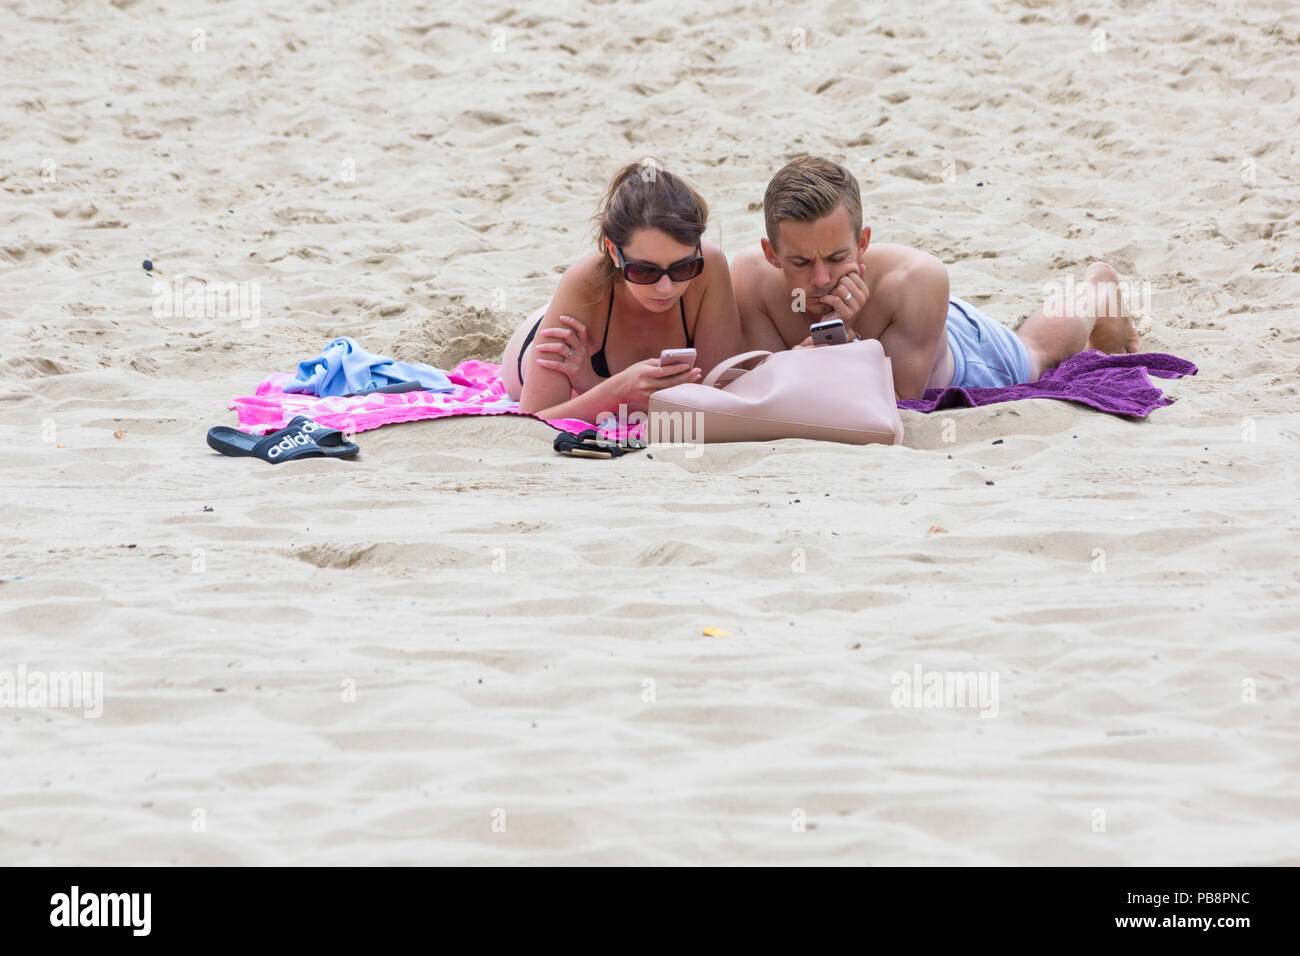 Bournemouth, Dorset, UK. 27th July 2018. UK weather: Sunseekers head to the seaside to soak up the sun at Bournemouth beaches on a warm humid day with some cloud cover. Couple sunbathing on beach looking at mobile phones iphones smartphones. Credit: Carolyn Jenkins/Alamy Live News - Stock Image